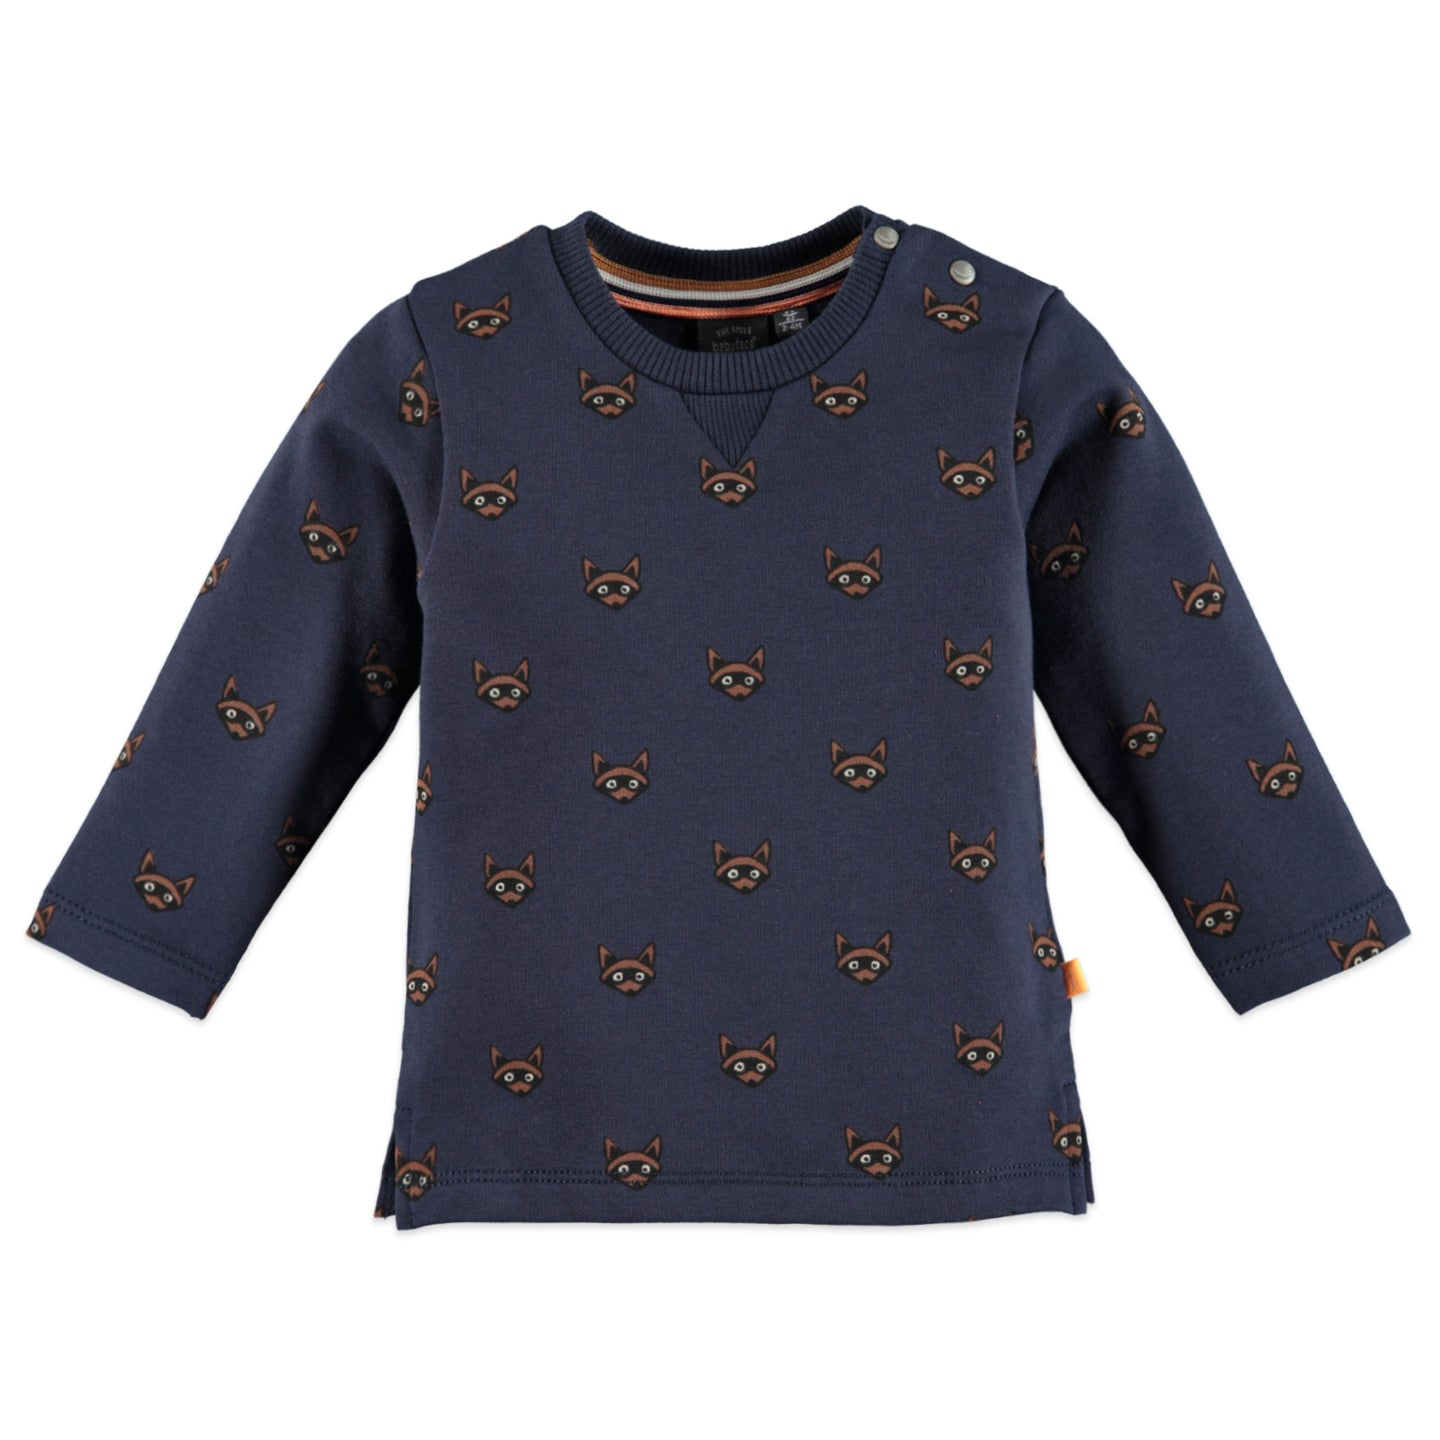 Babyface - Organic Baby Raccoons Long Sleeve Top - Navy